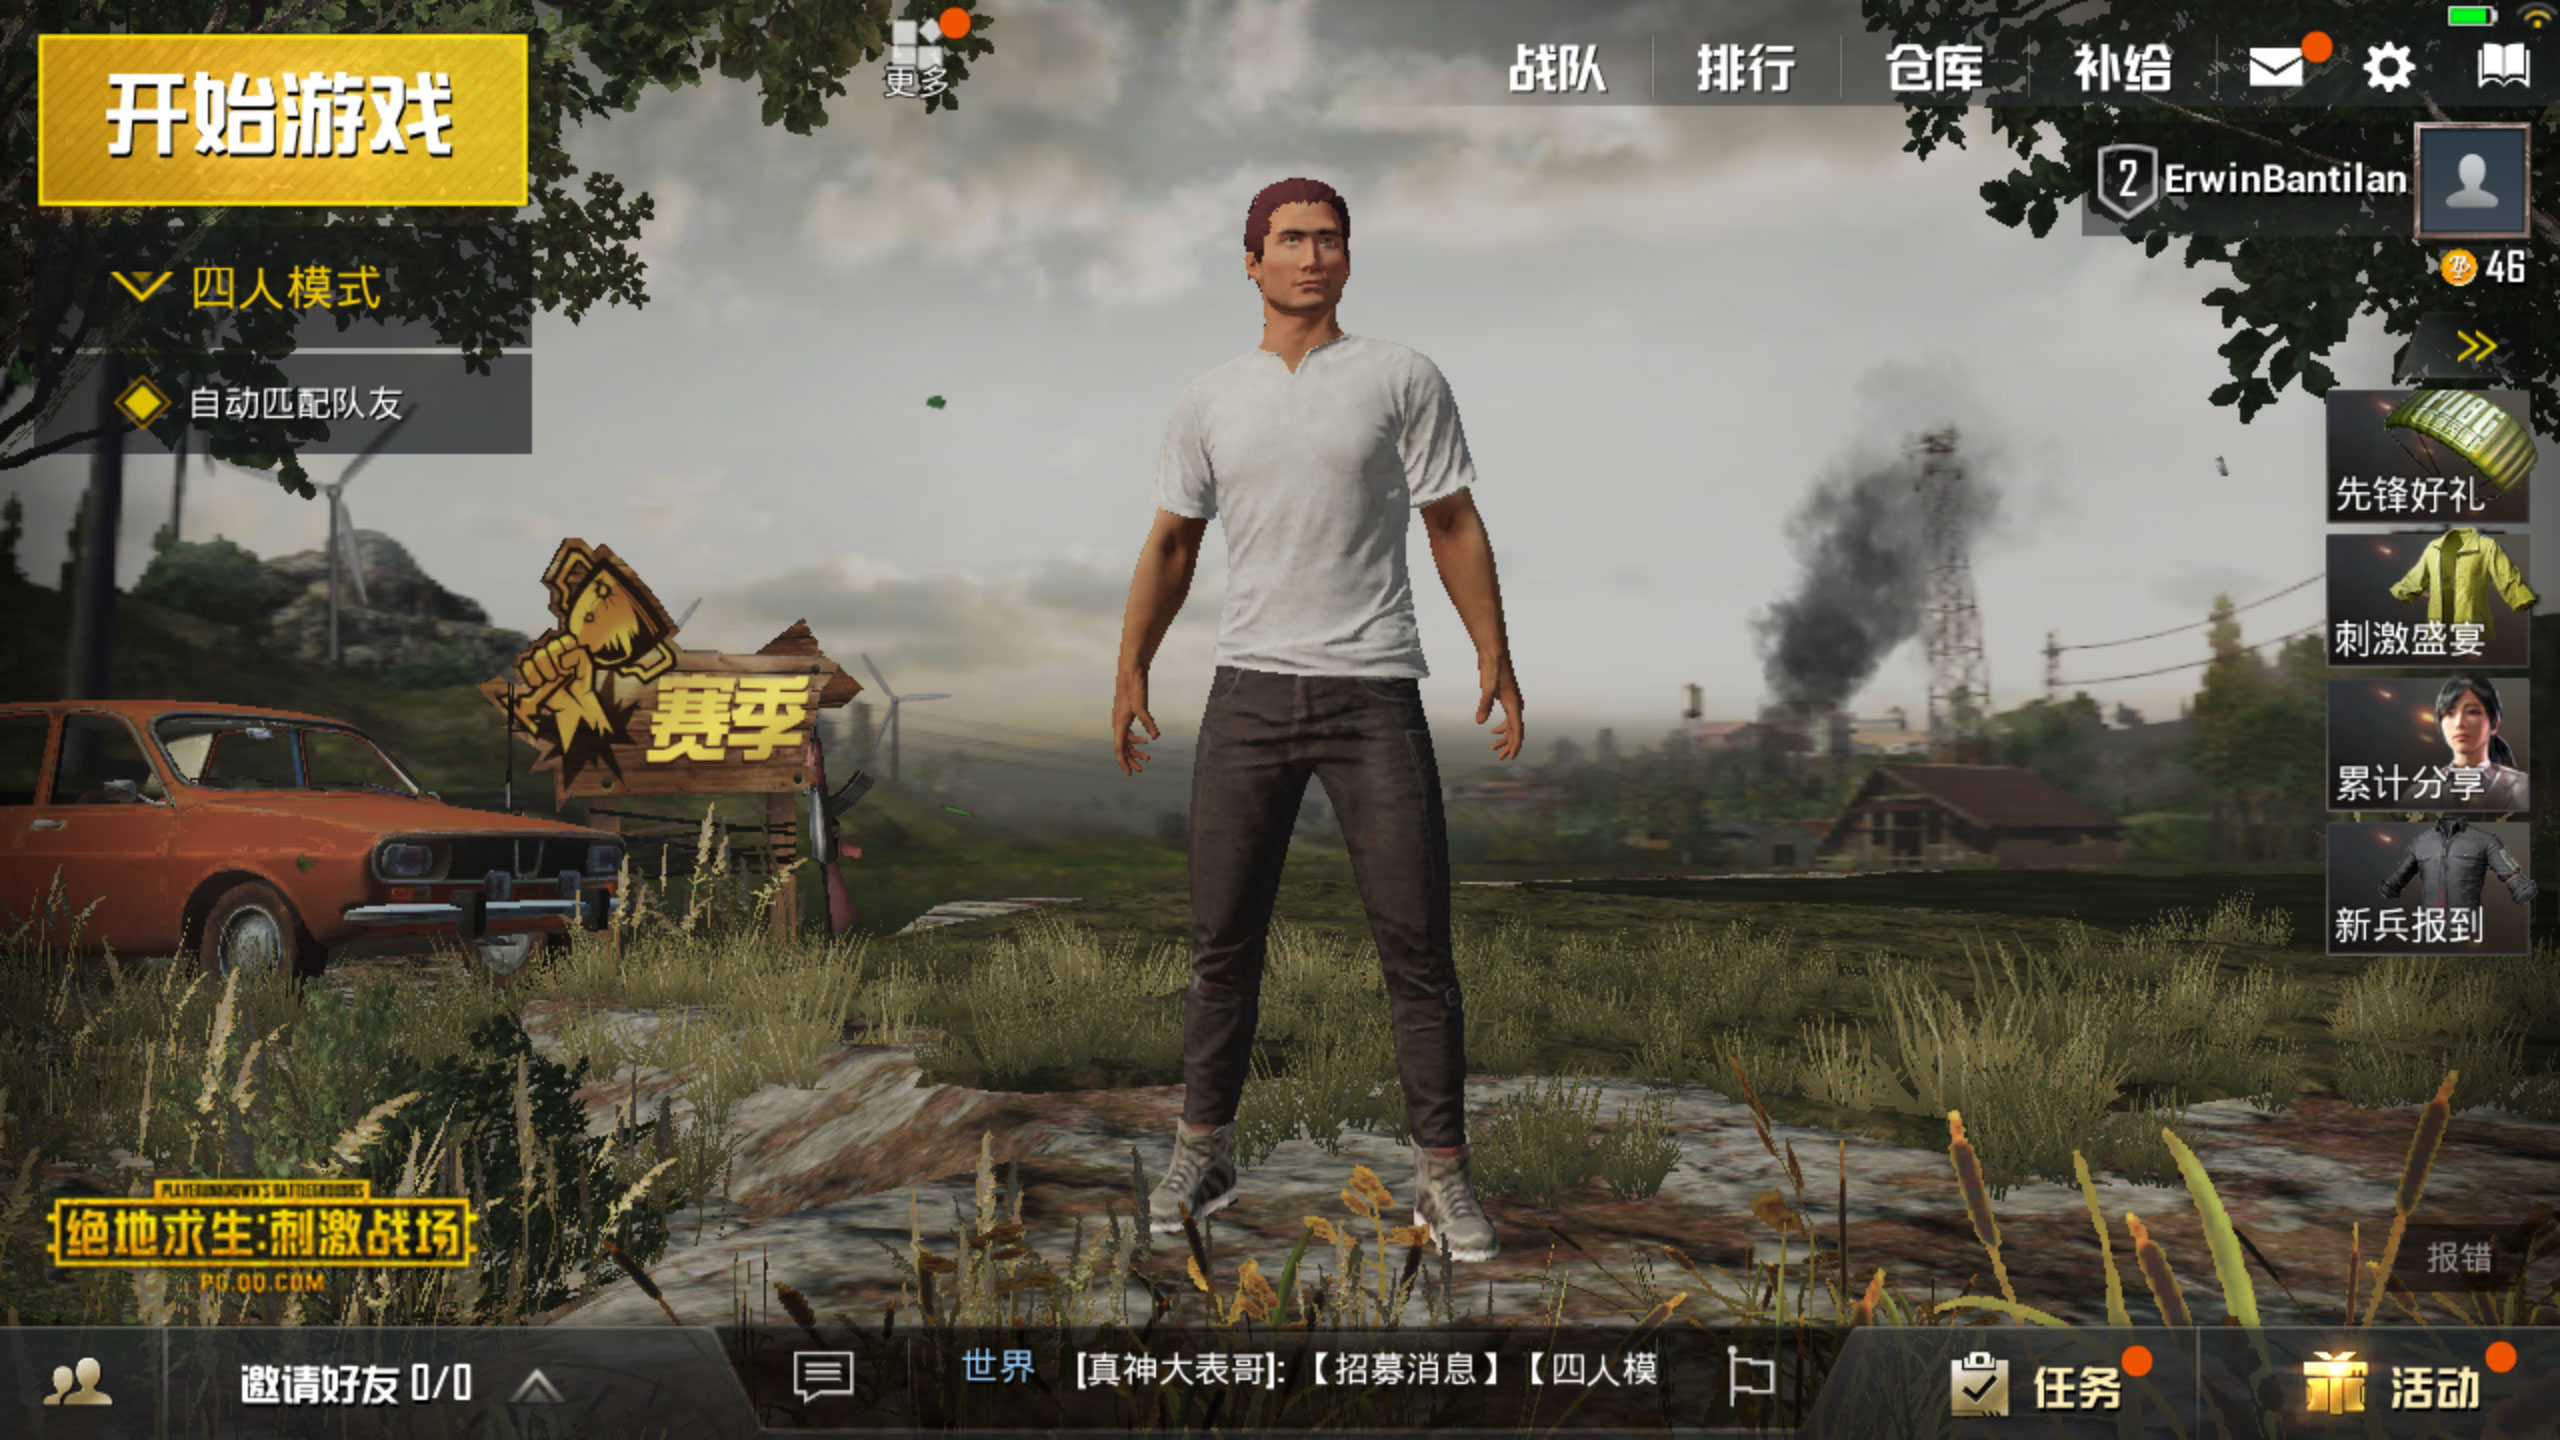 Pubg Wallpaper App Download: How To Download PUBG Mobile Open Beta In Android And IOS